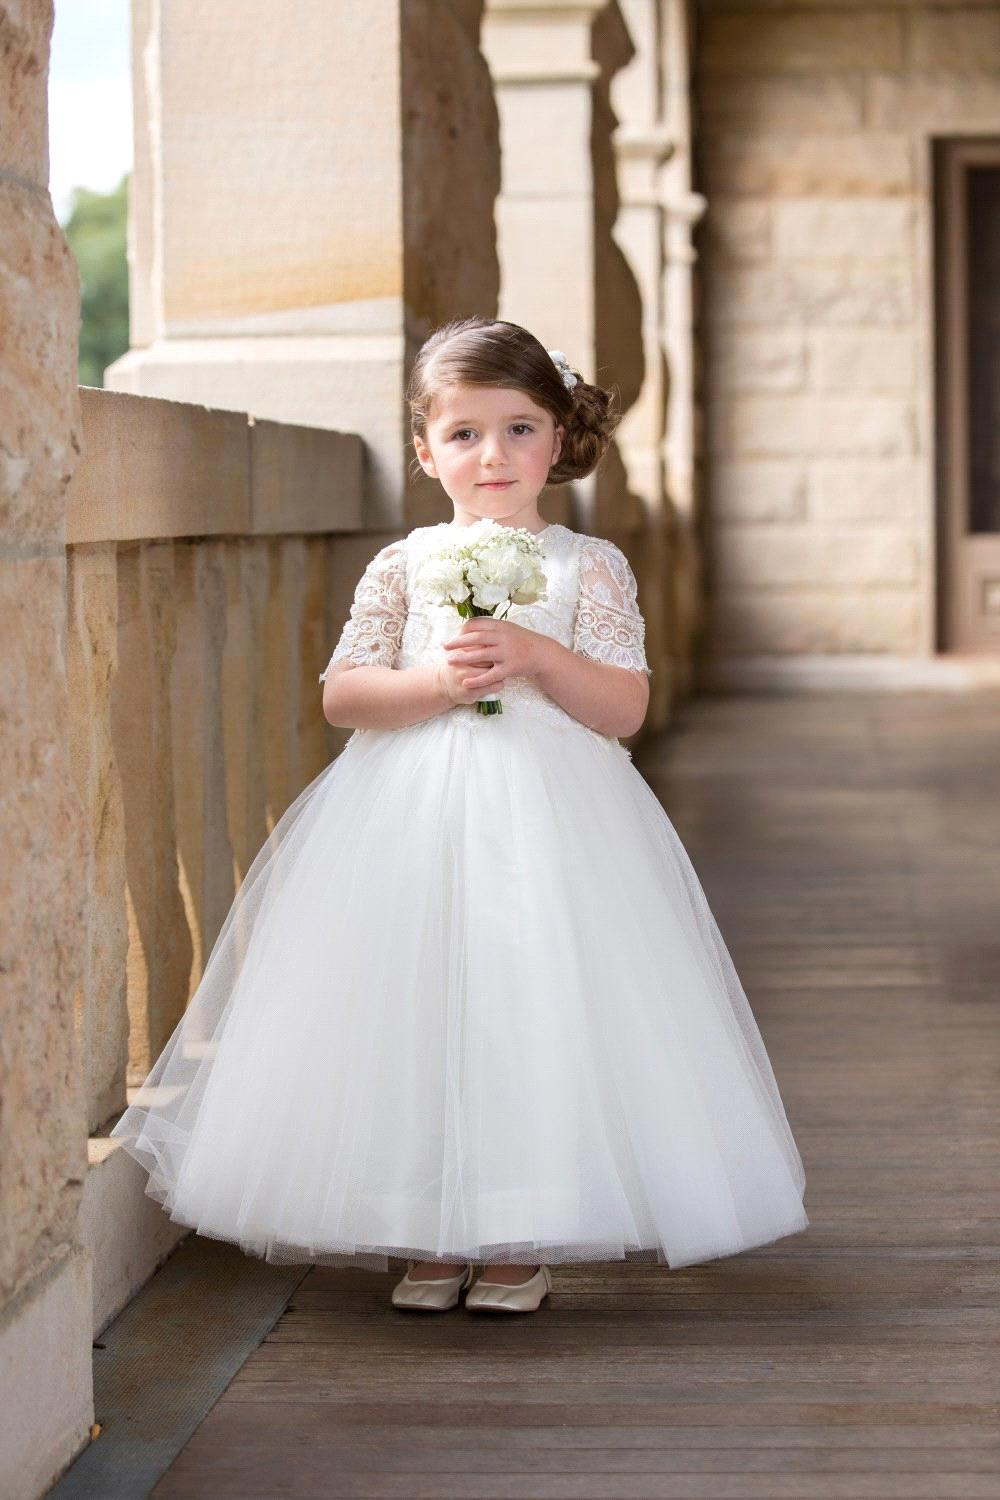 Us 128 43 Cute White Ivory Ball Gown Lace Flower Girl Dresses 2017 For Wedding Short Sleeves First Communion Dresses For Girls In Flower Girl